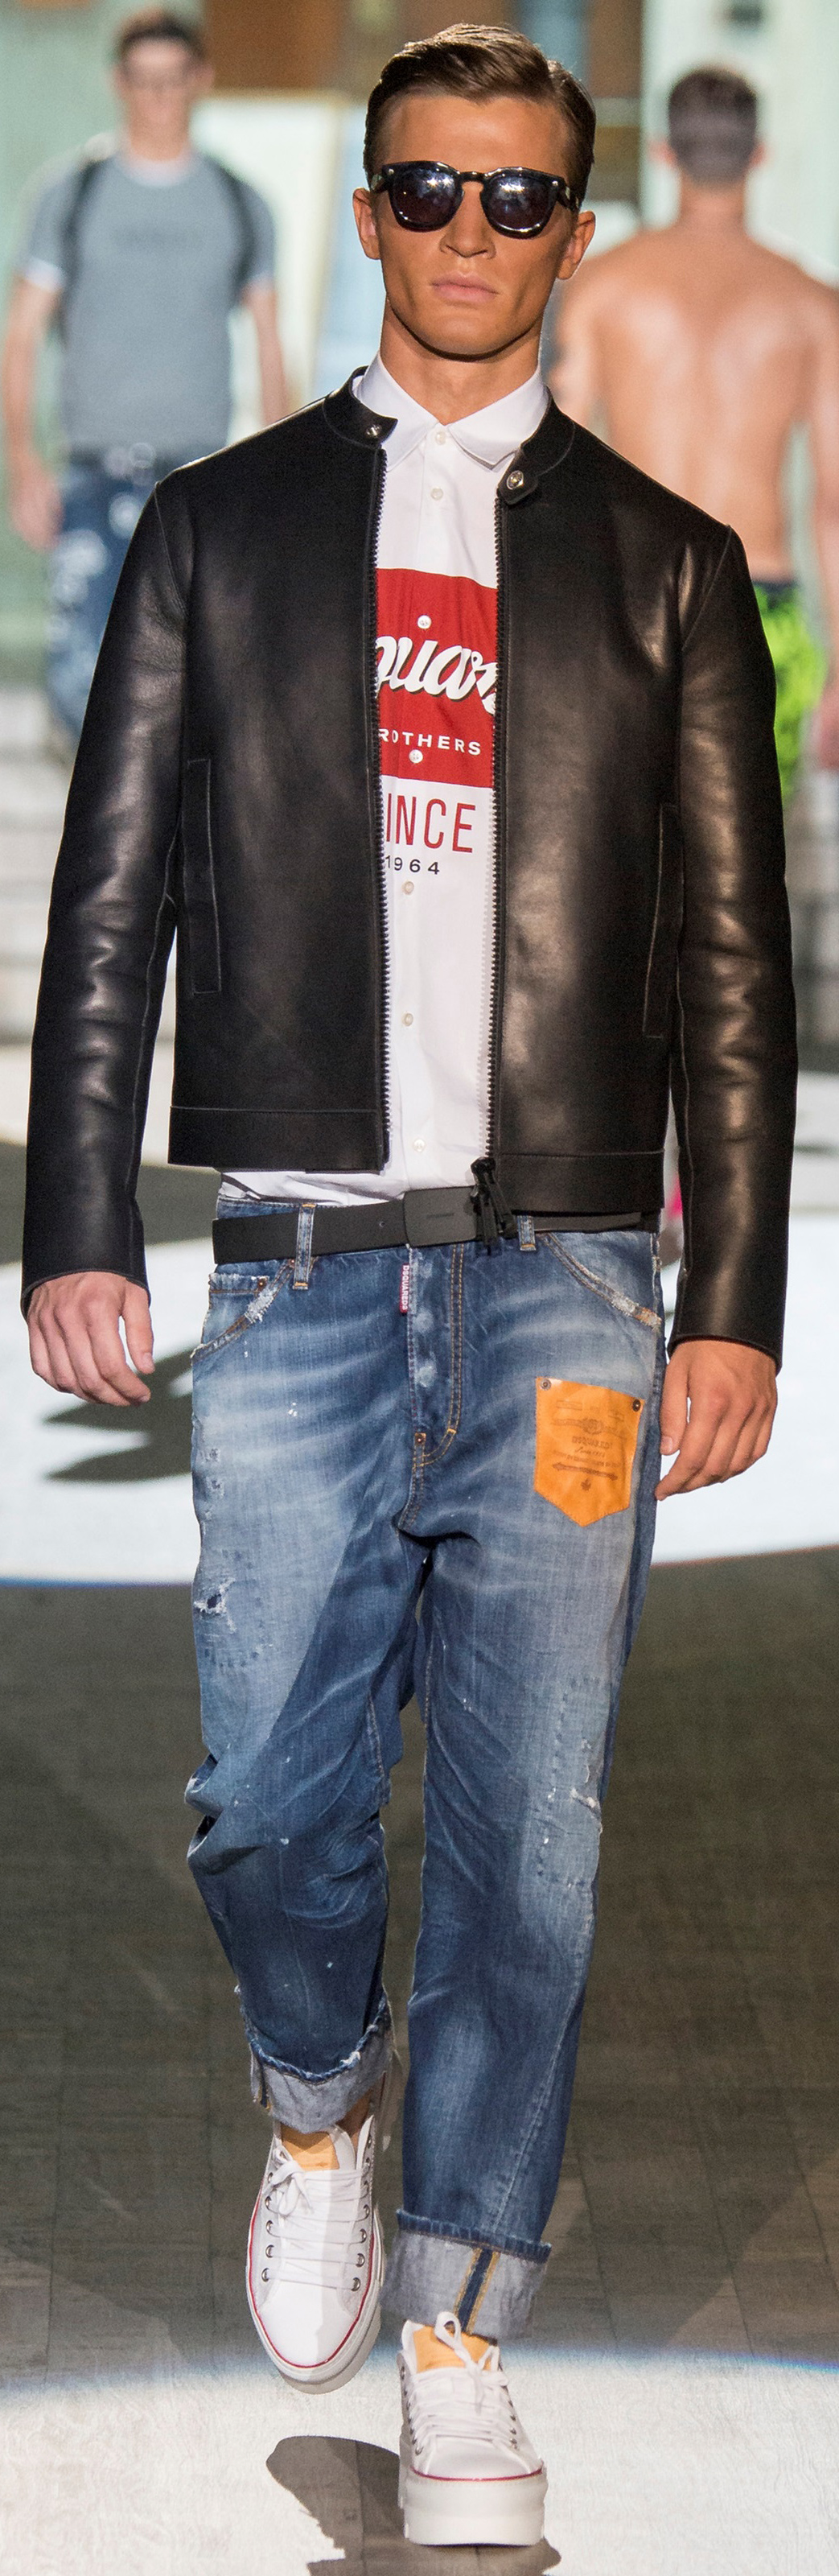 Leather jacket in summer - Micro Thin Black Leather Jacket By Dsquared2 Men S Spring Summer Fashion